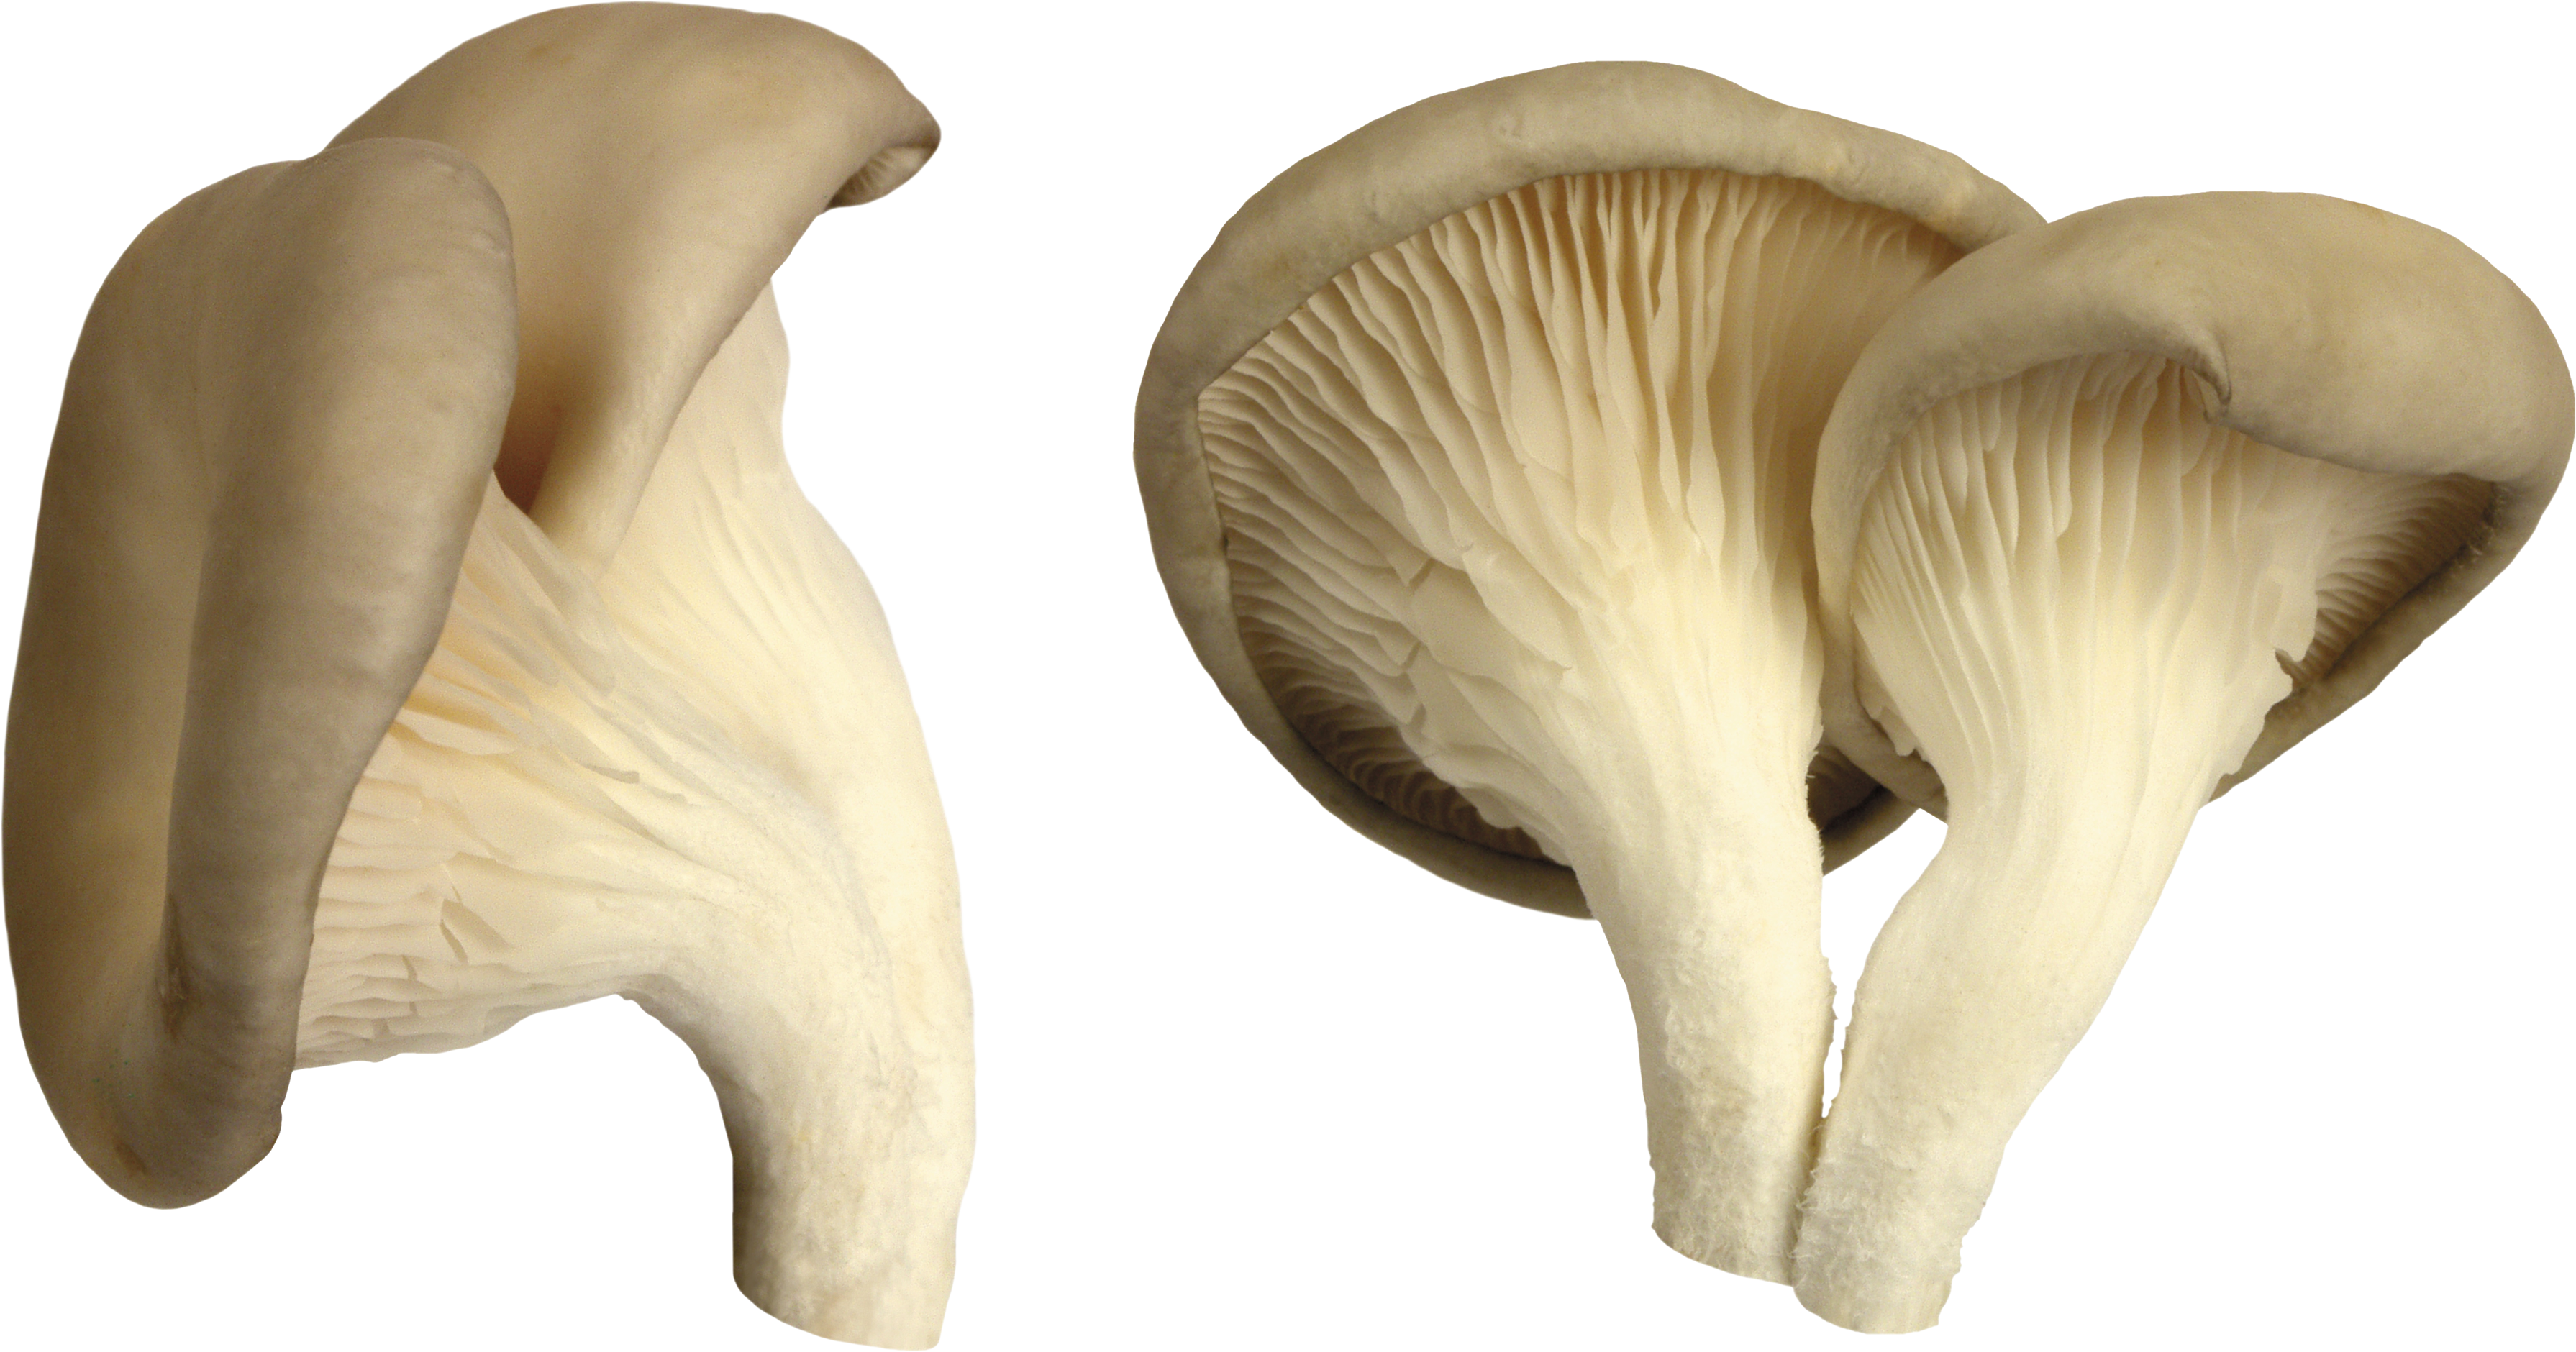 White png image purepng. Mushroom clipart oyster mushroom